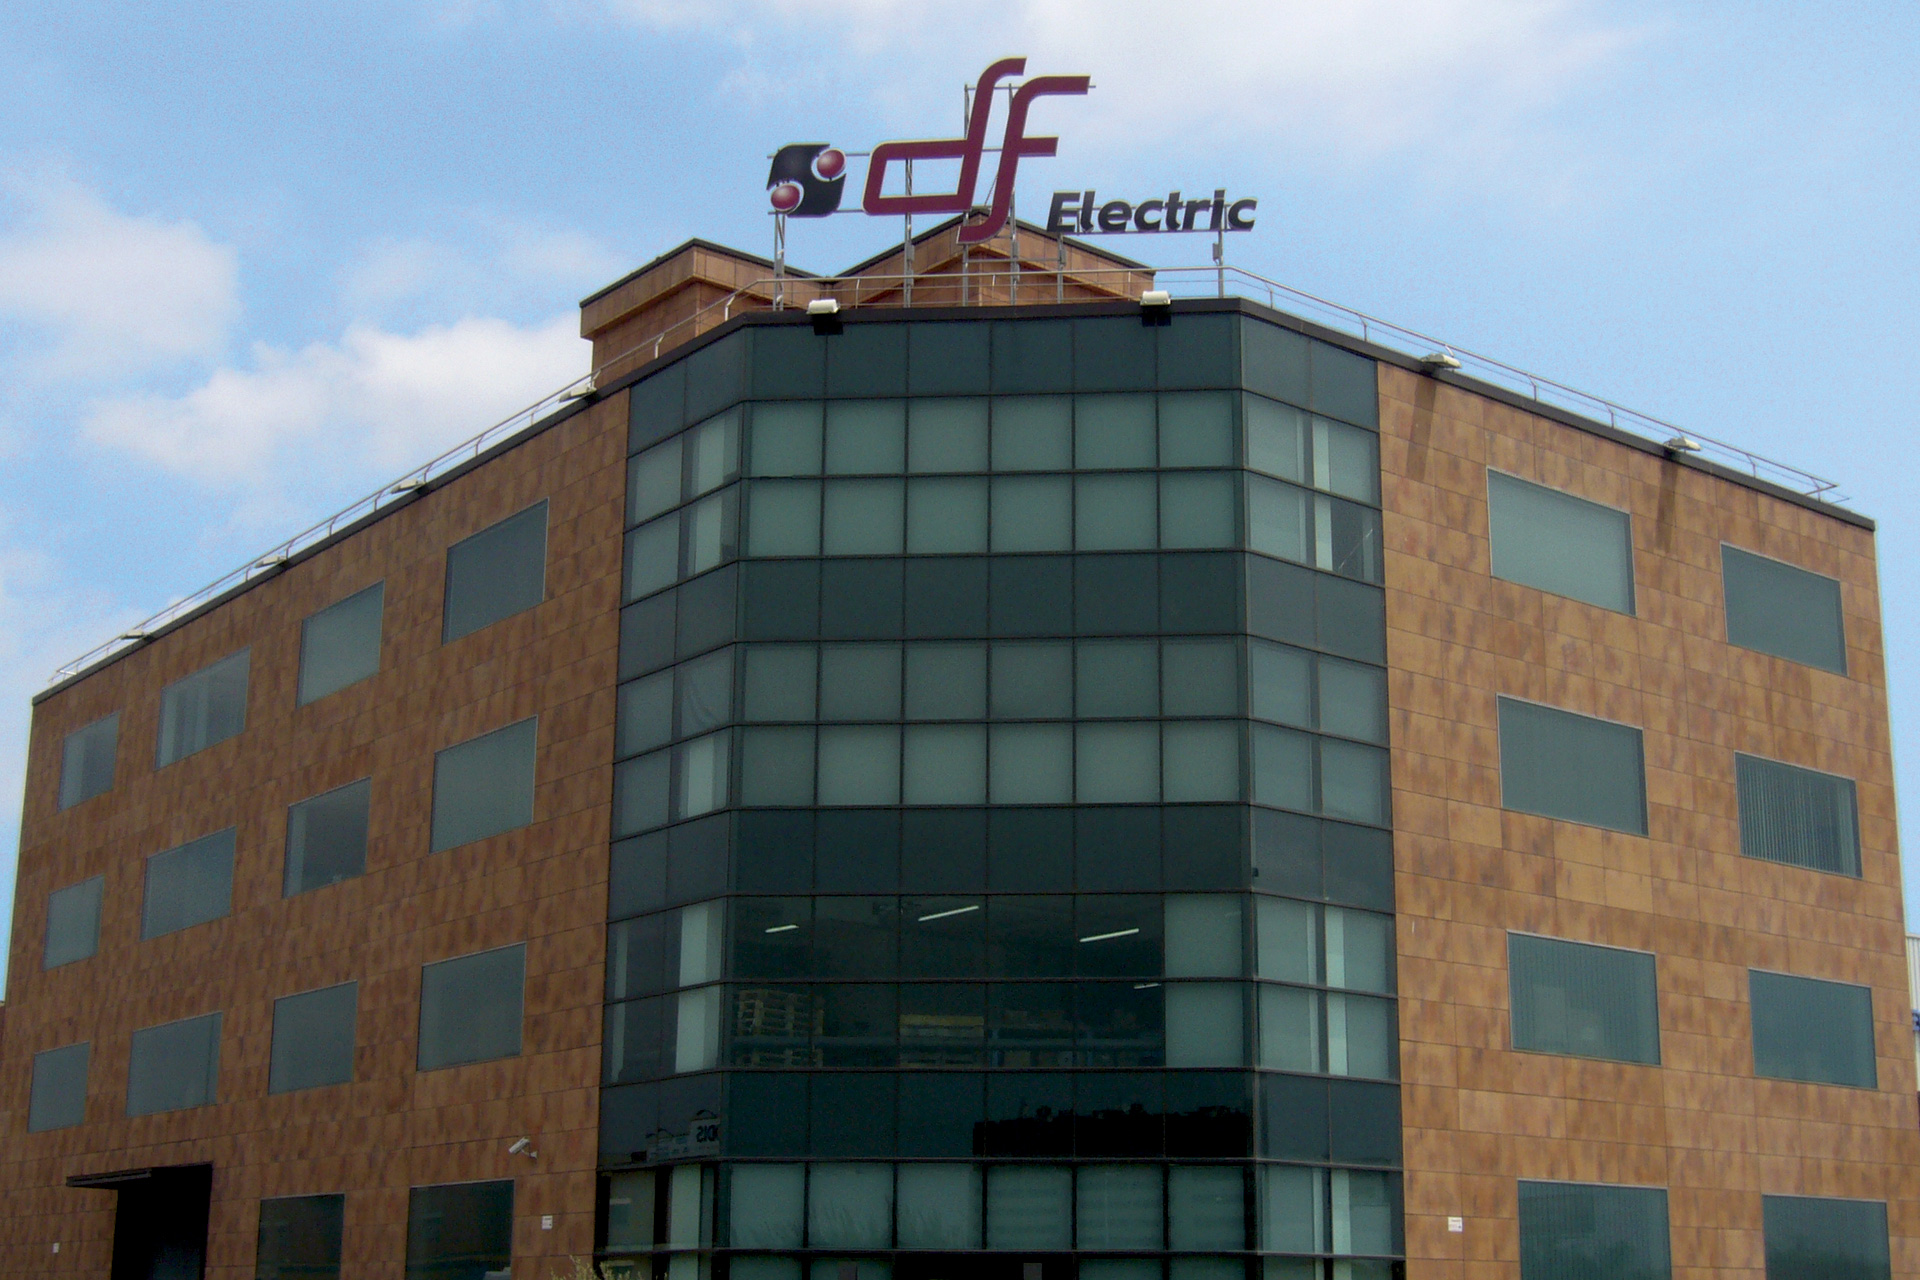 offices-and-factory-dfelectric